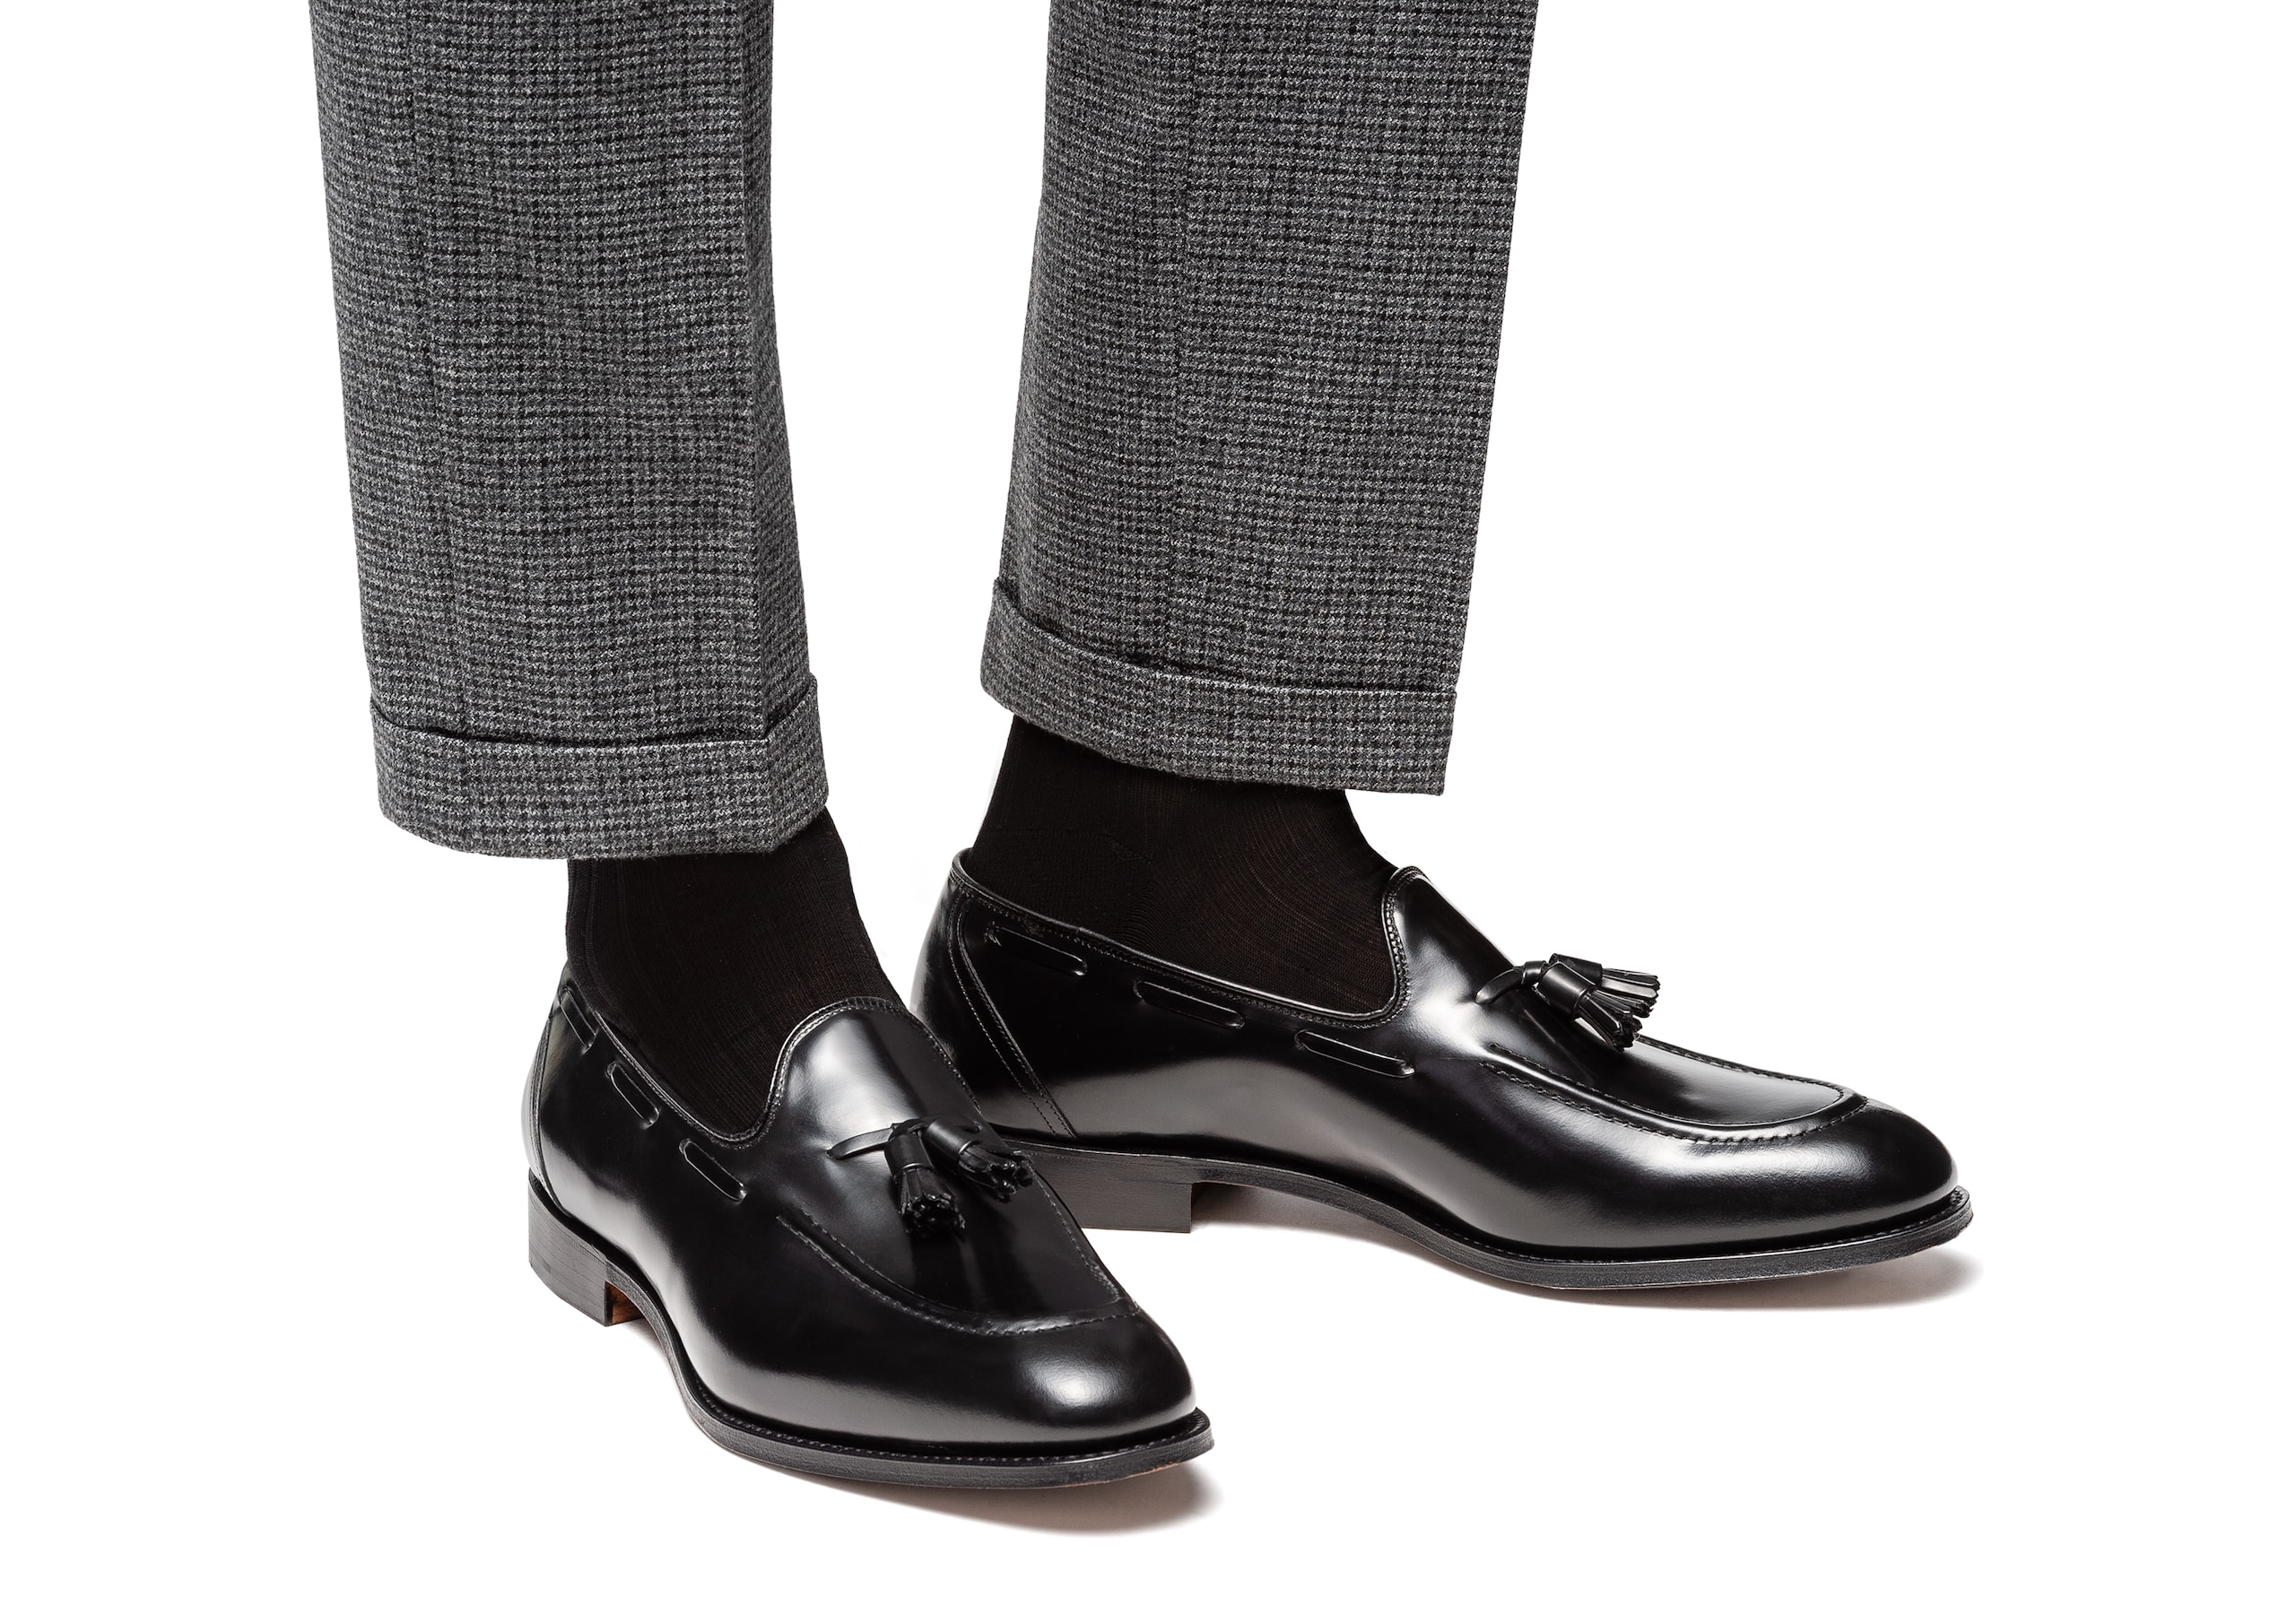 Kingsley 2 Church's Polished Binder Loafer Black